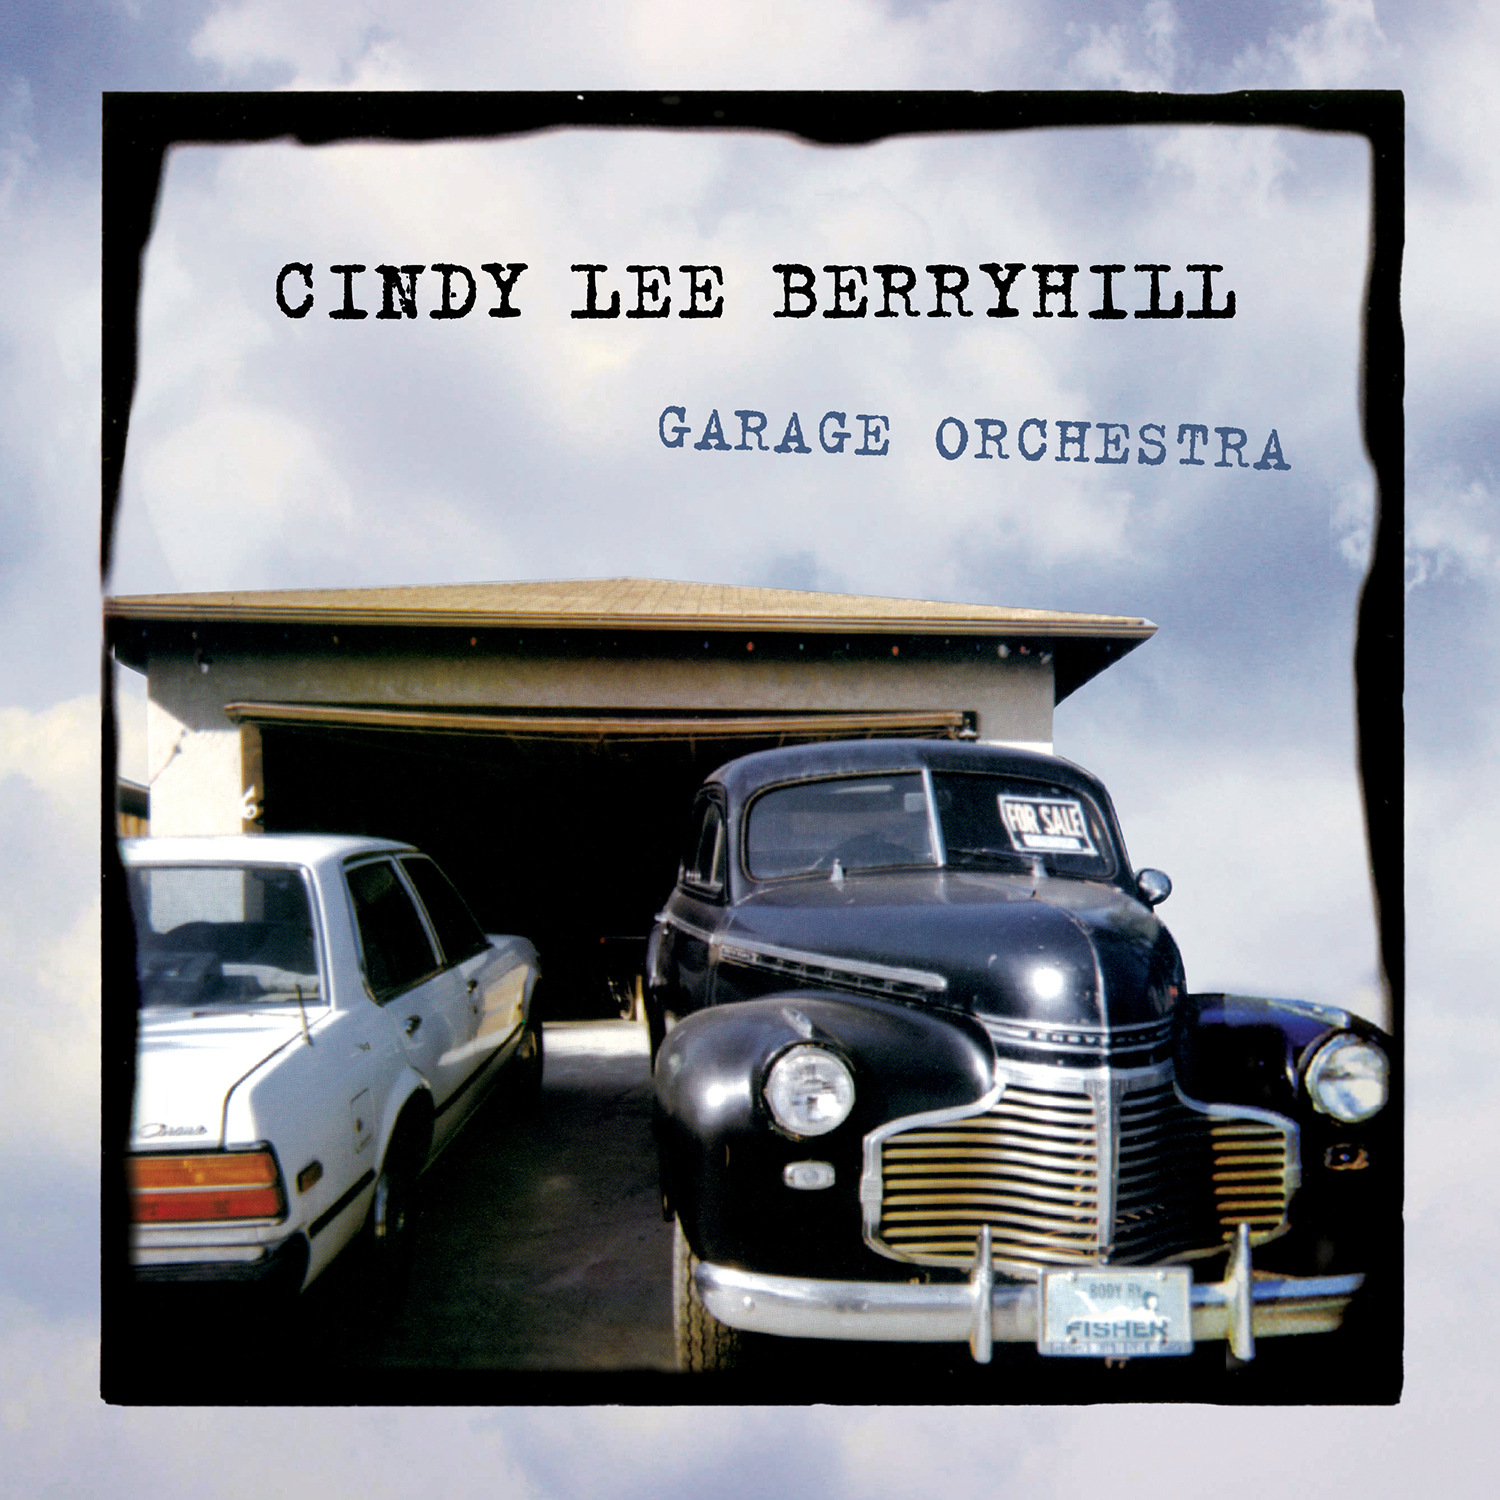 Cindy Lee Berryhill - Garage Orchestra Release Date: August 2, 2019 Label: Omnivore Recordings  SERVICE: Mastering NUMBER OF DISCS: 1 GENRE: Folk Rock FORMAT: CD